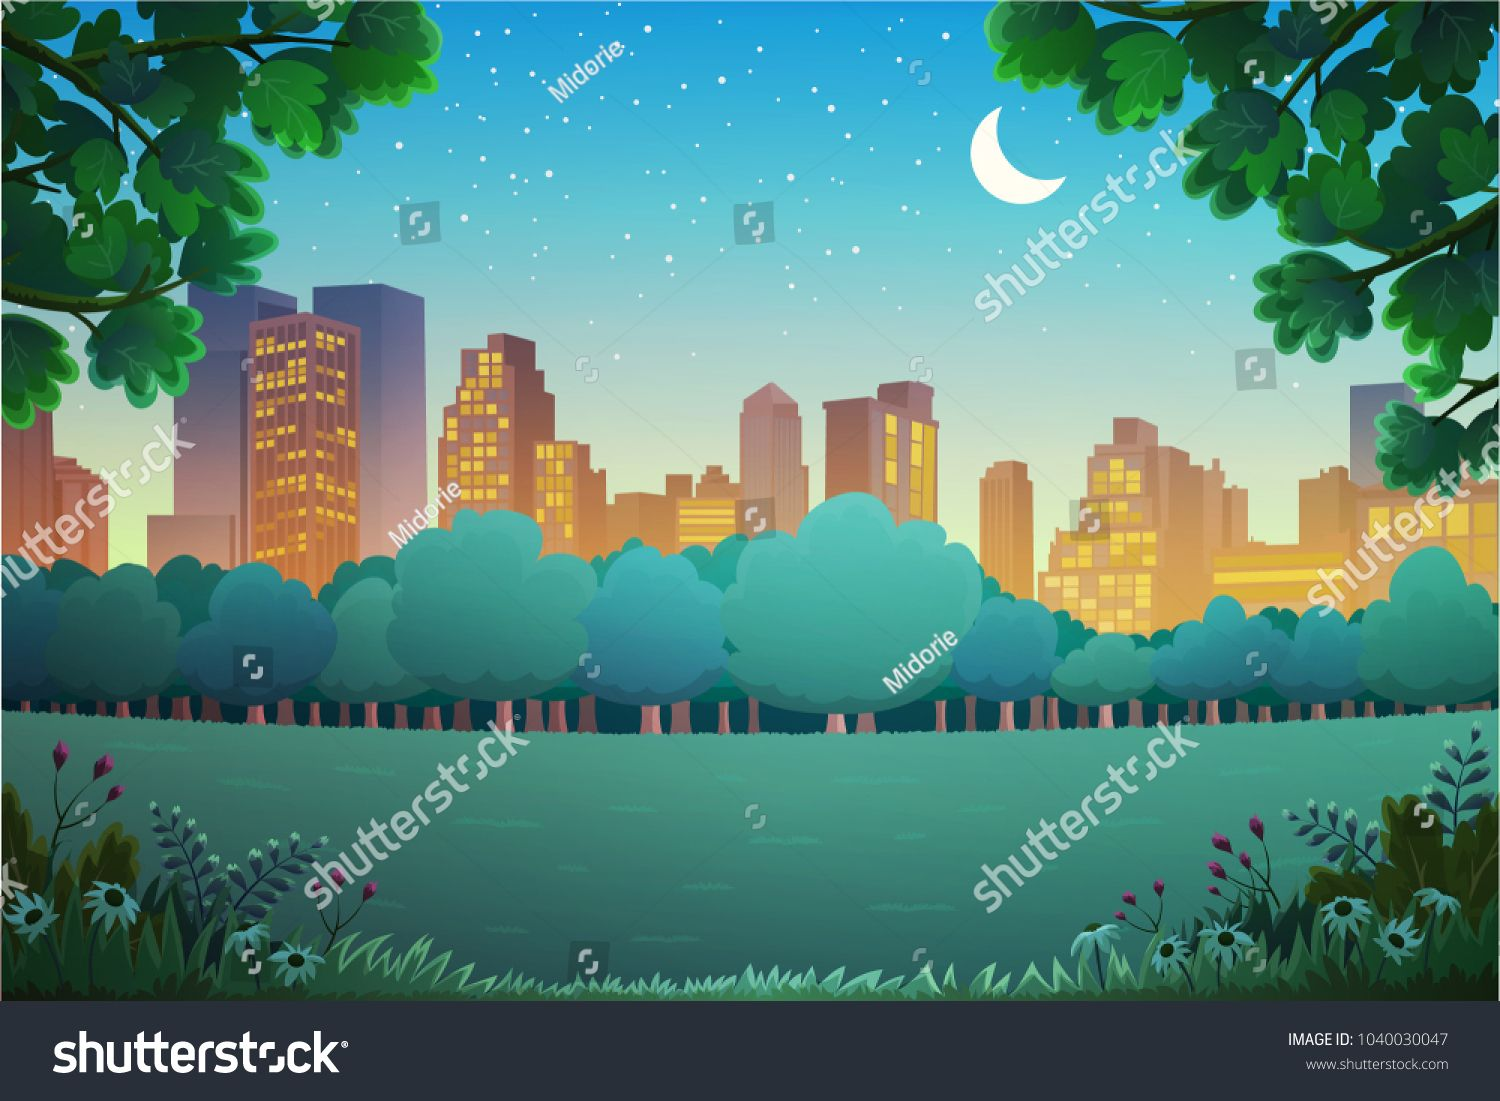 Illustration Of City Park At Night Vector Background Sponsored Spon Park City Illustration Backgr Vector Background City Illustration Park City